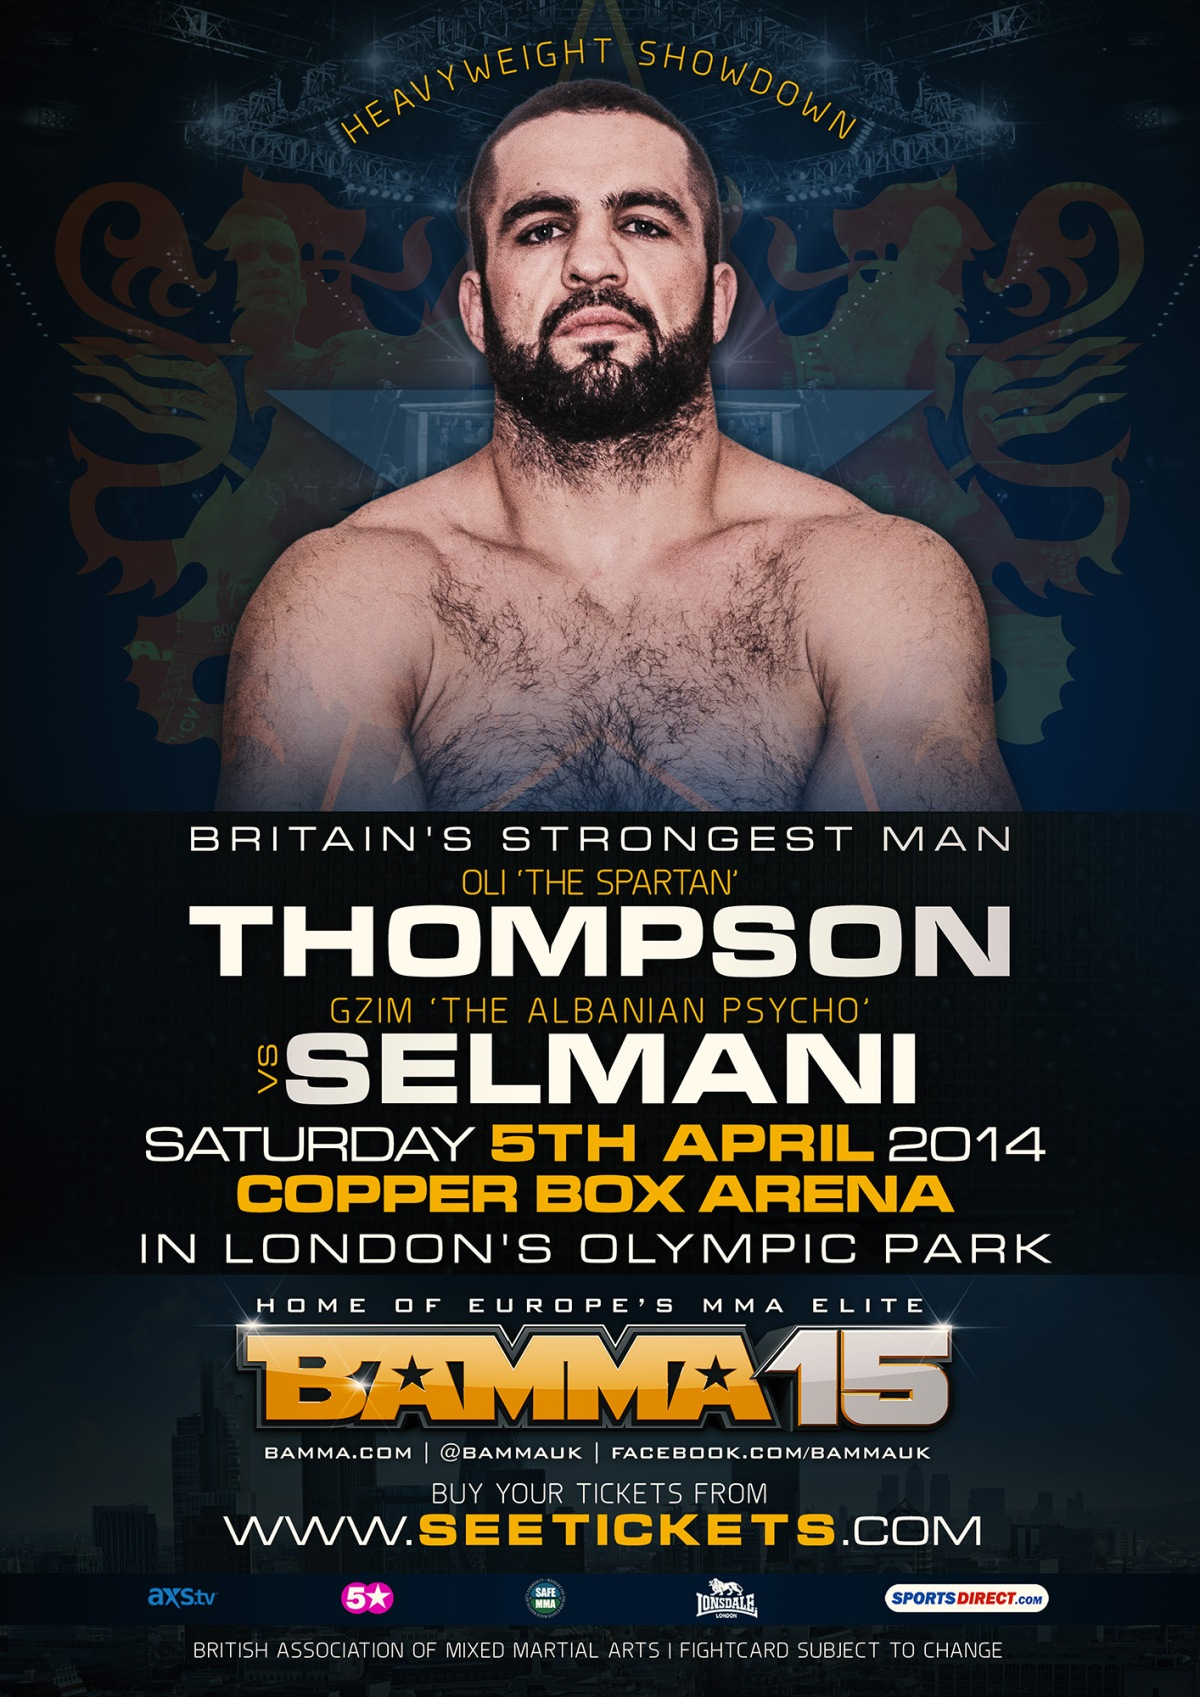 BAMMA 15 CARD TAKING SHAPE NICELY